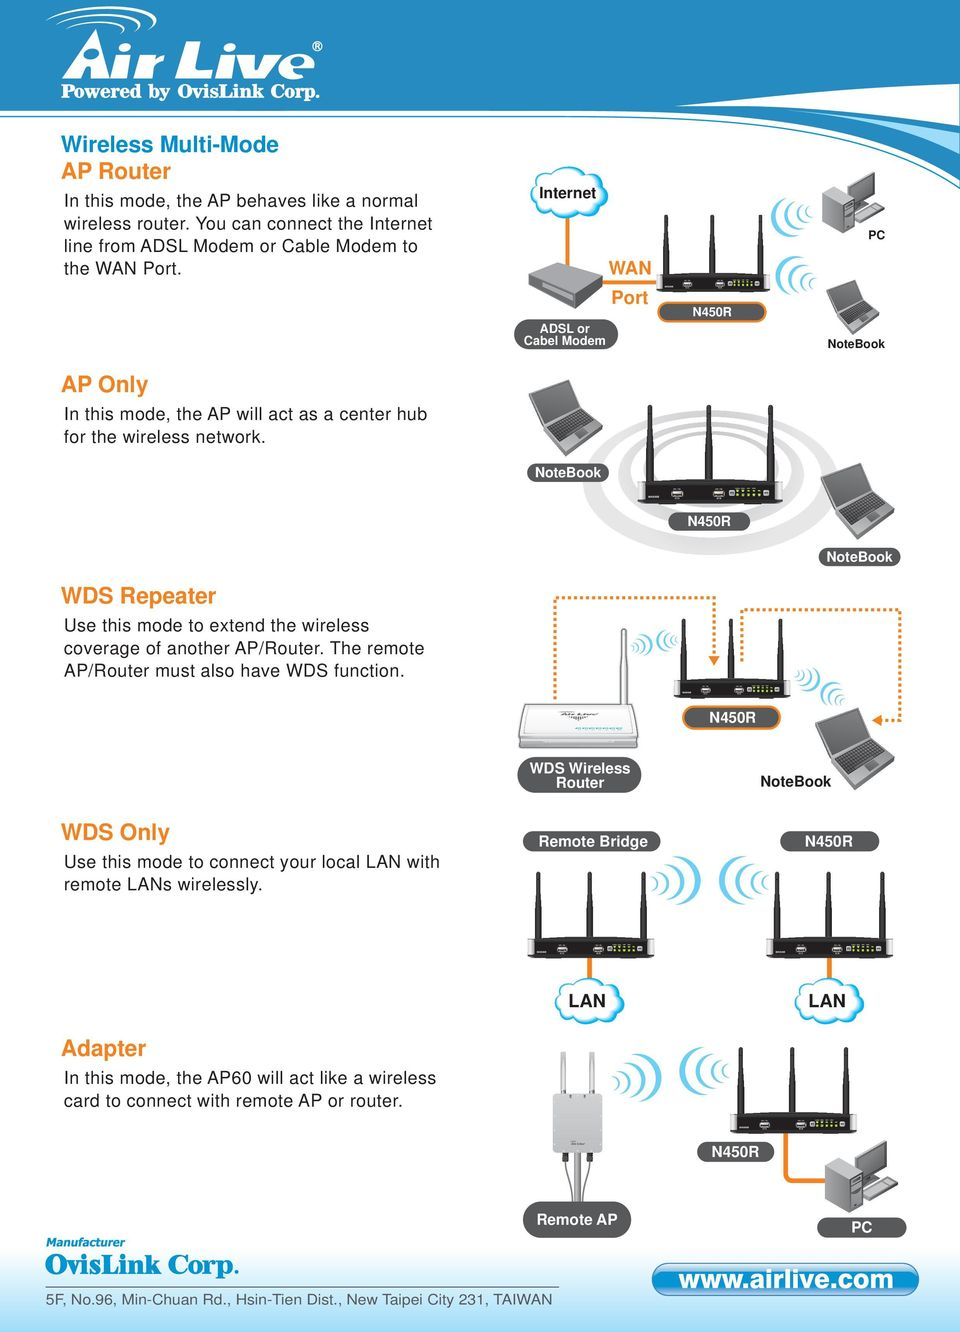 WAN PC ADSL or Cabel Modem AP Only In this mode, the AP will act as a center hub for the wireless network.